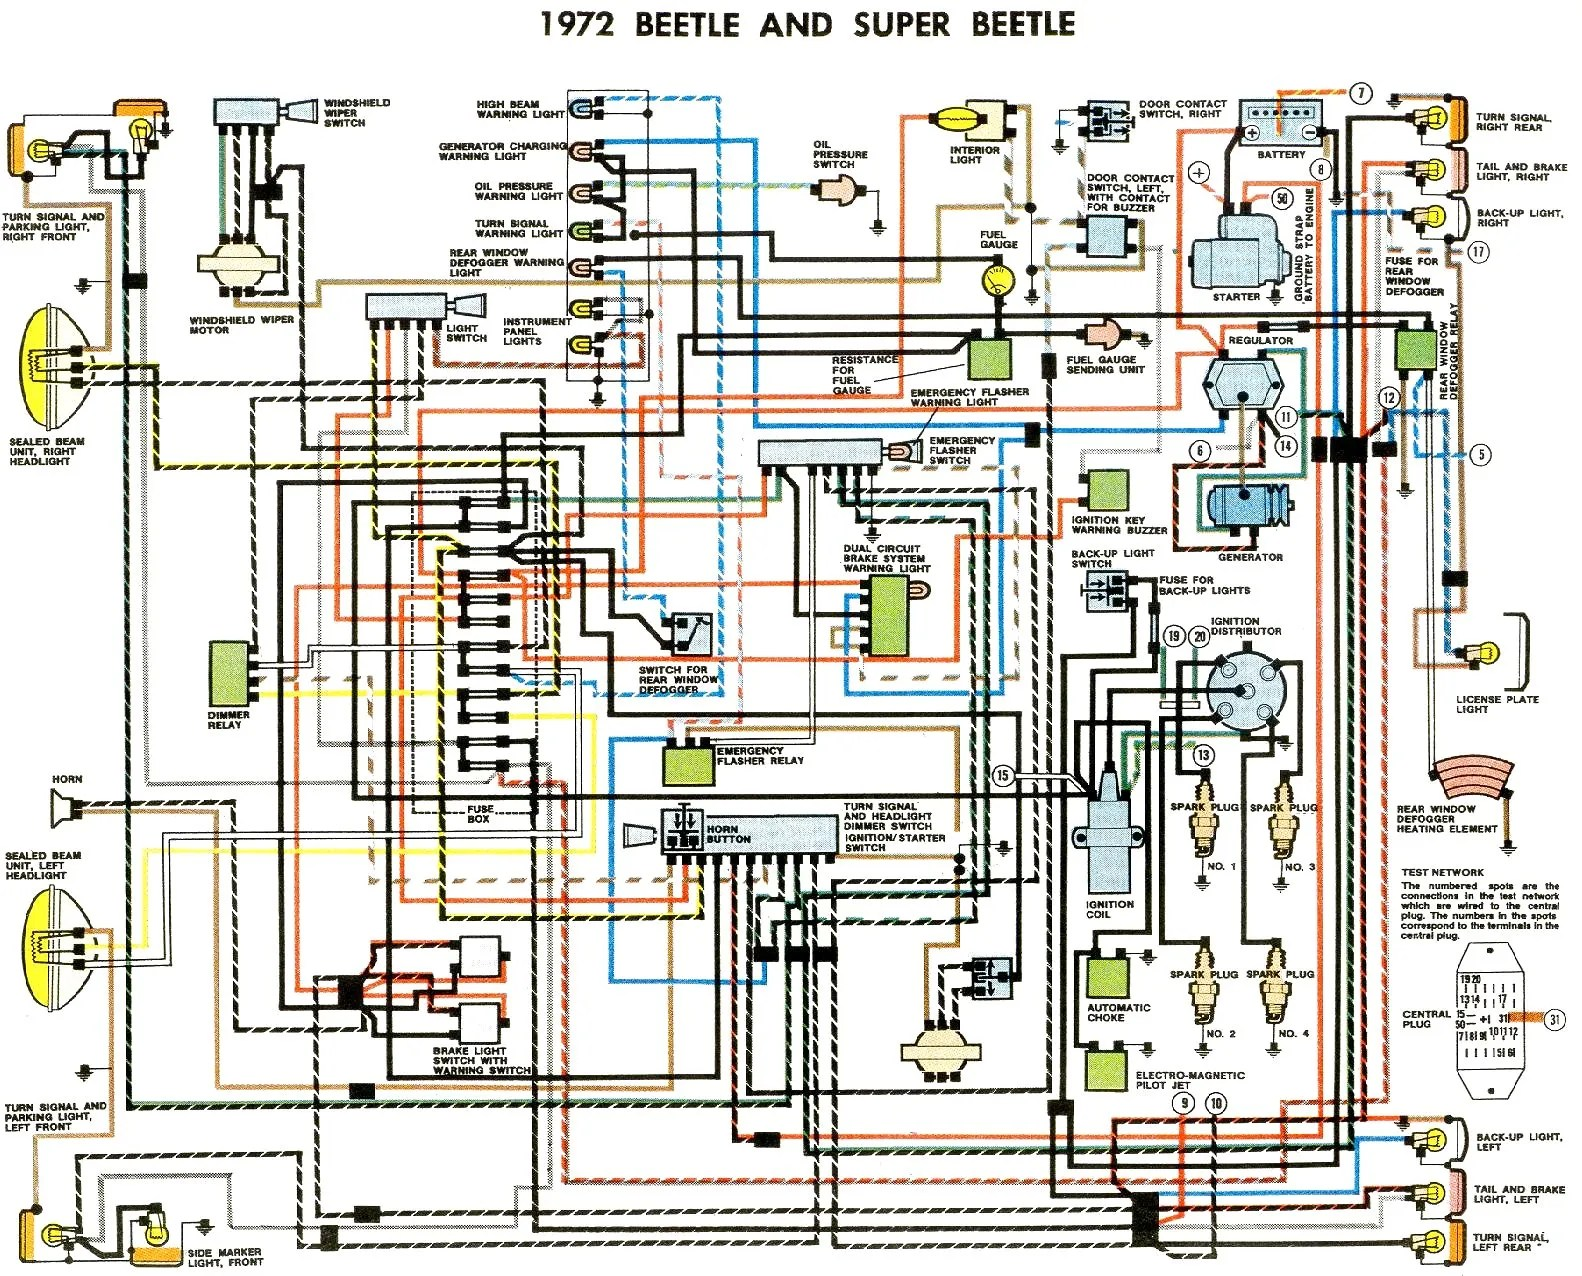 hight resolution of 1972 beetle wiring diagram thegoldenbug com 1972 vw beetle alternator wiring diagram 1972 beetle wiring diagram